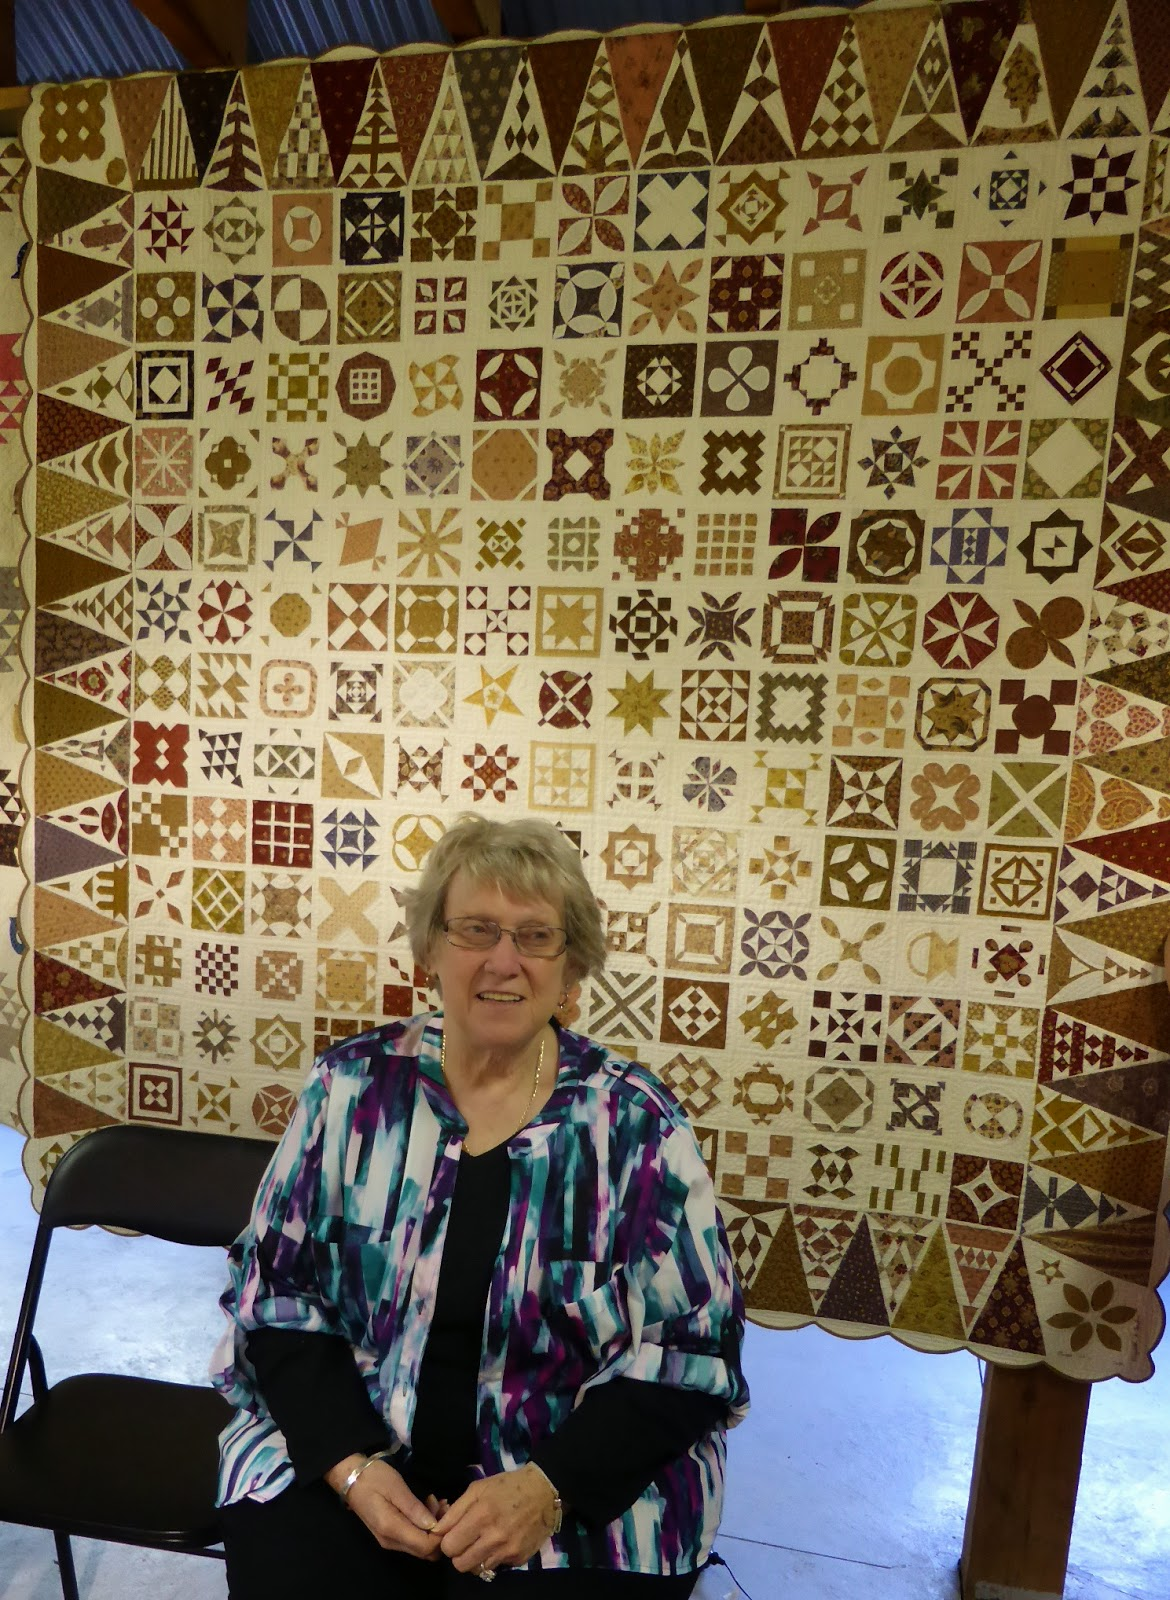 Brenda Papadakis Dear Jane Quilt Quilts in the Barn